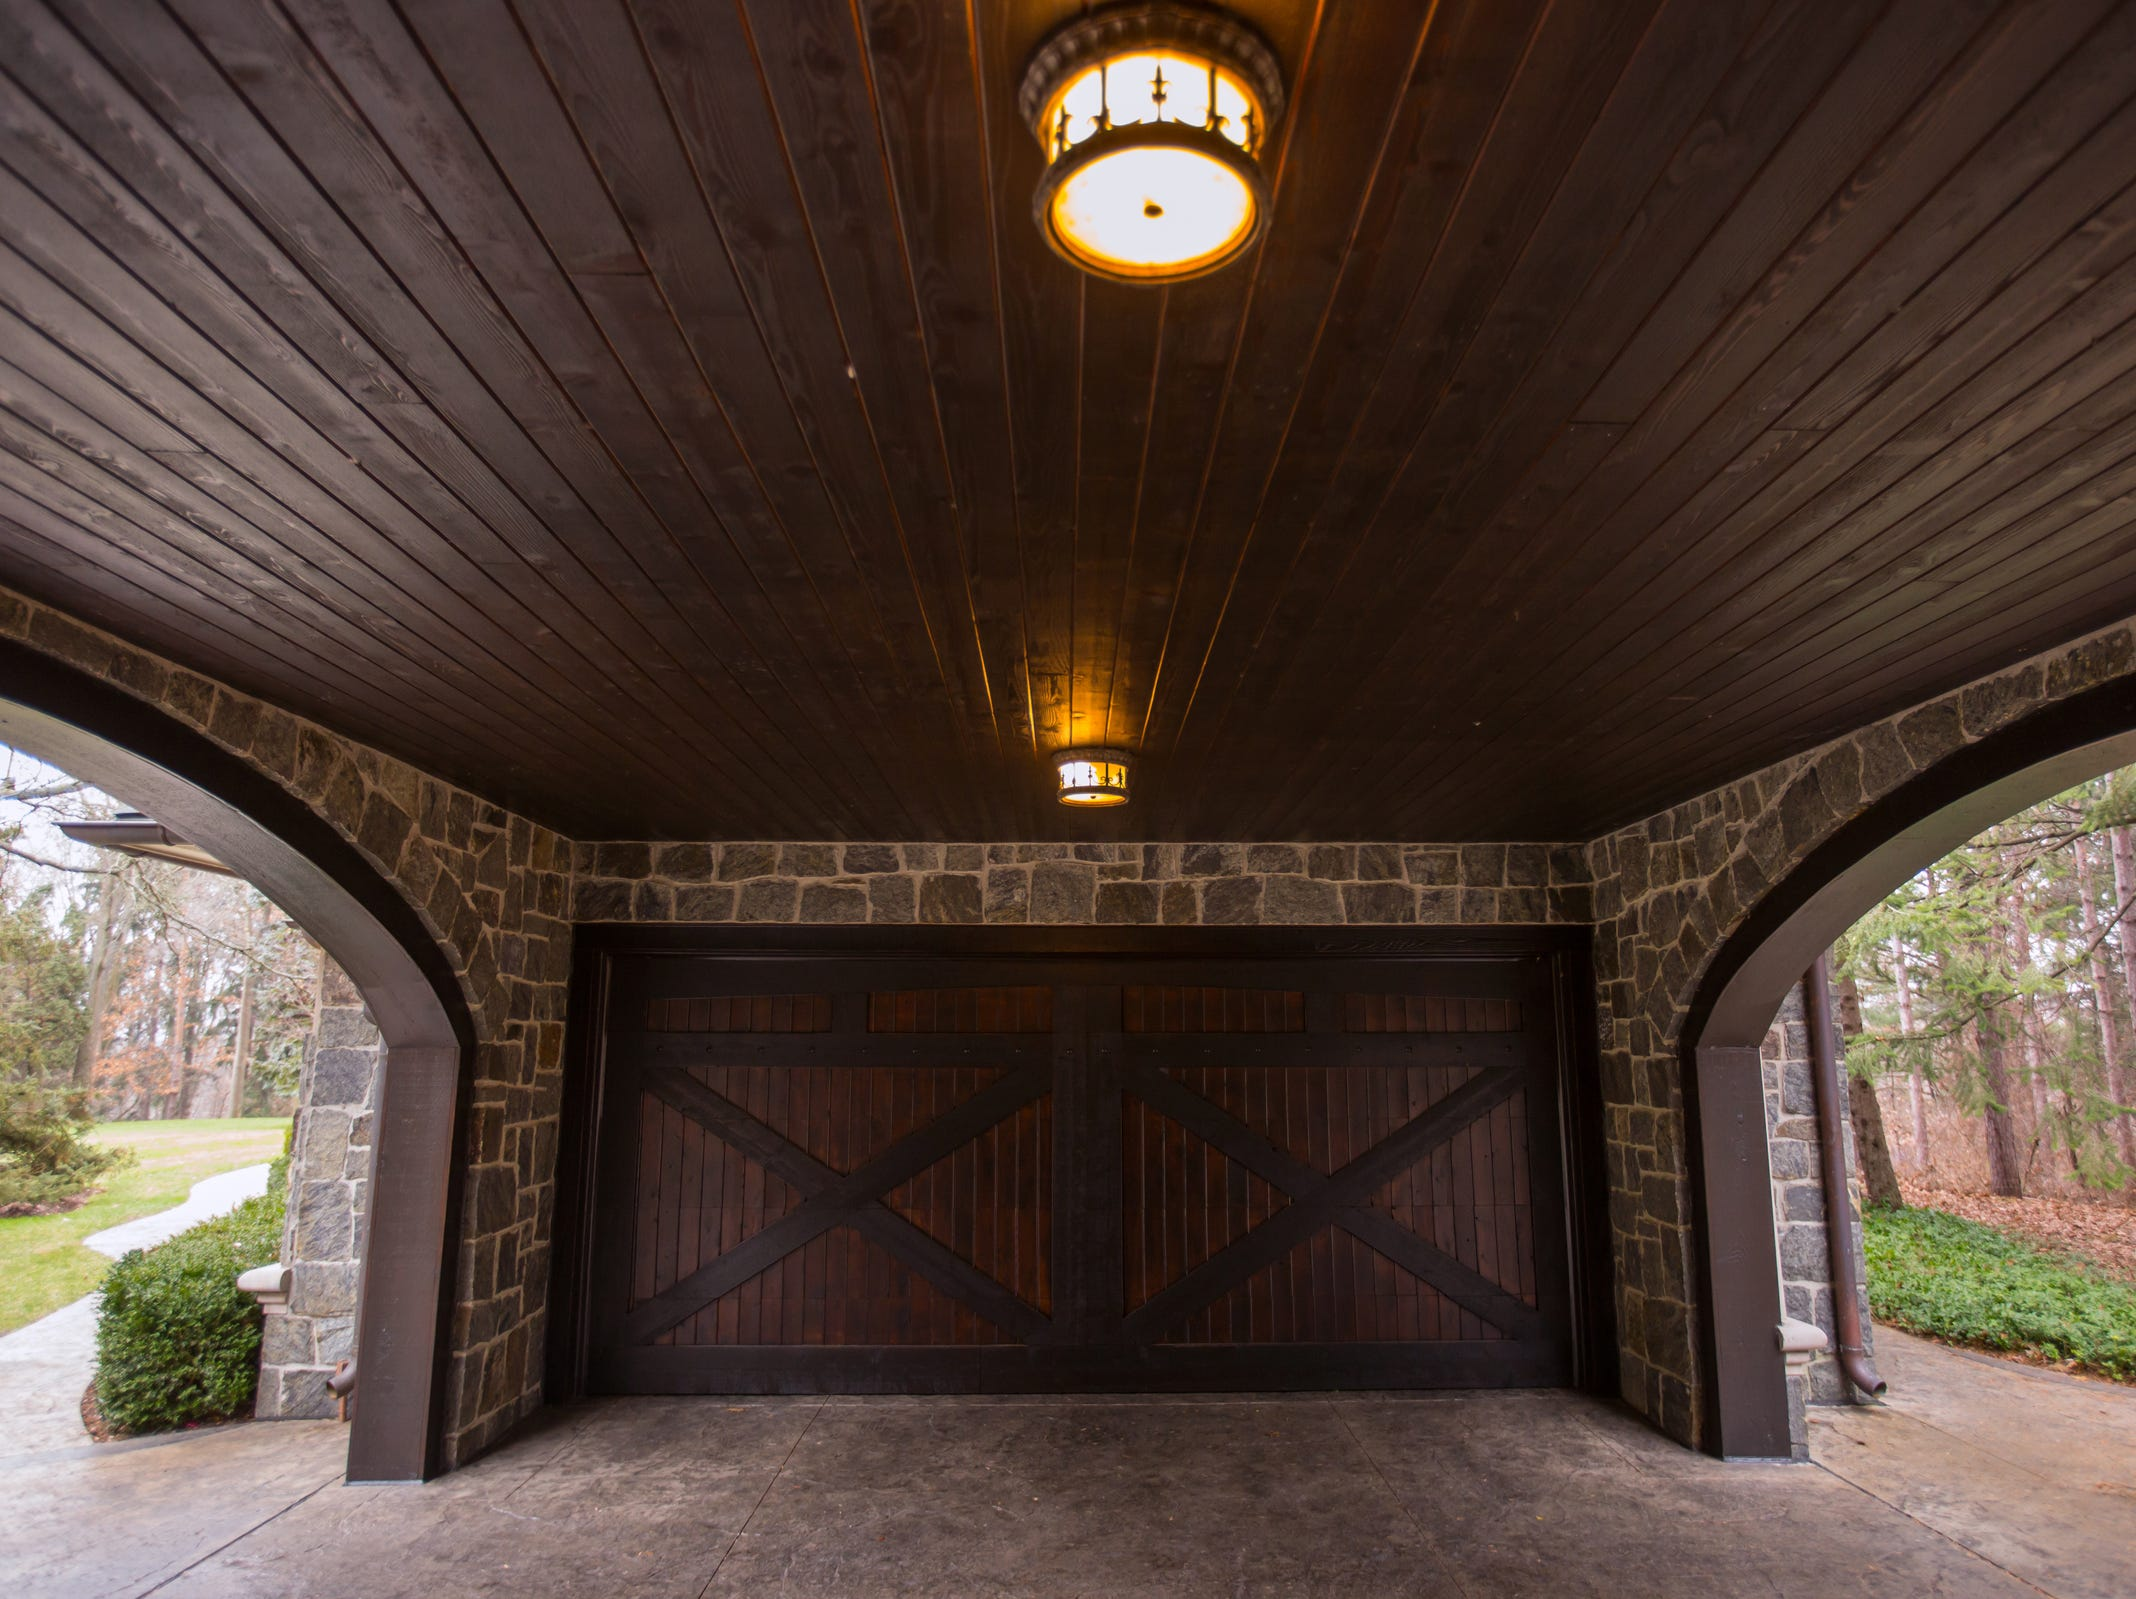 An arched cover between two garages attached to the 5,000 sq. ft. 3-bedroom home in Washington Township envisioned after the Biltmore Estate designed by Alex Bogarts and built by an award winning builder as his own personal residence. The home sets back into the exterior boundary line of Stoney Creek Metro Park.